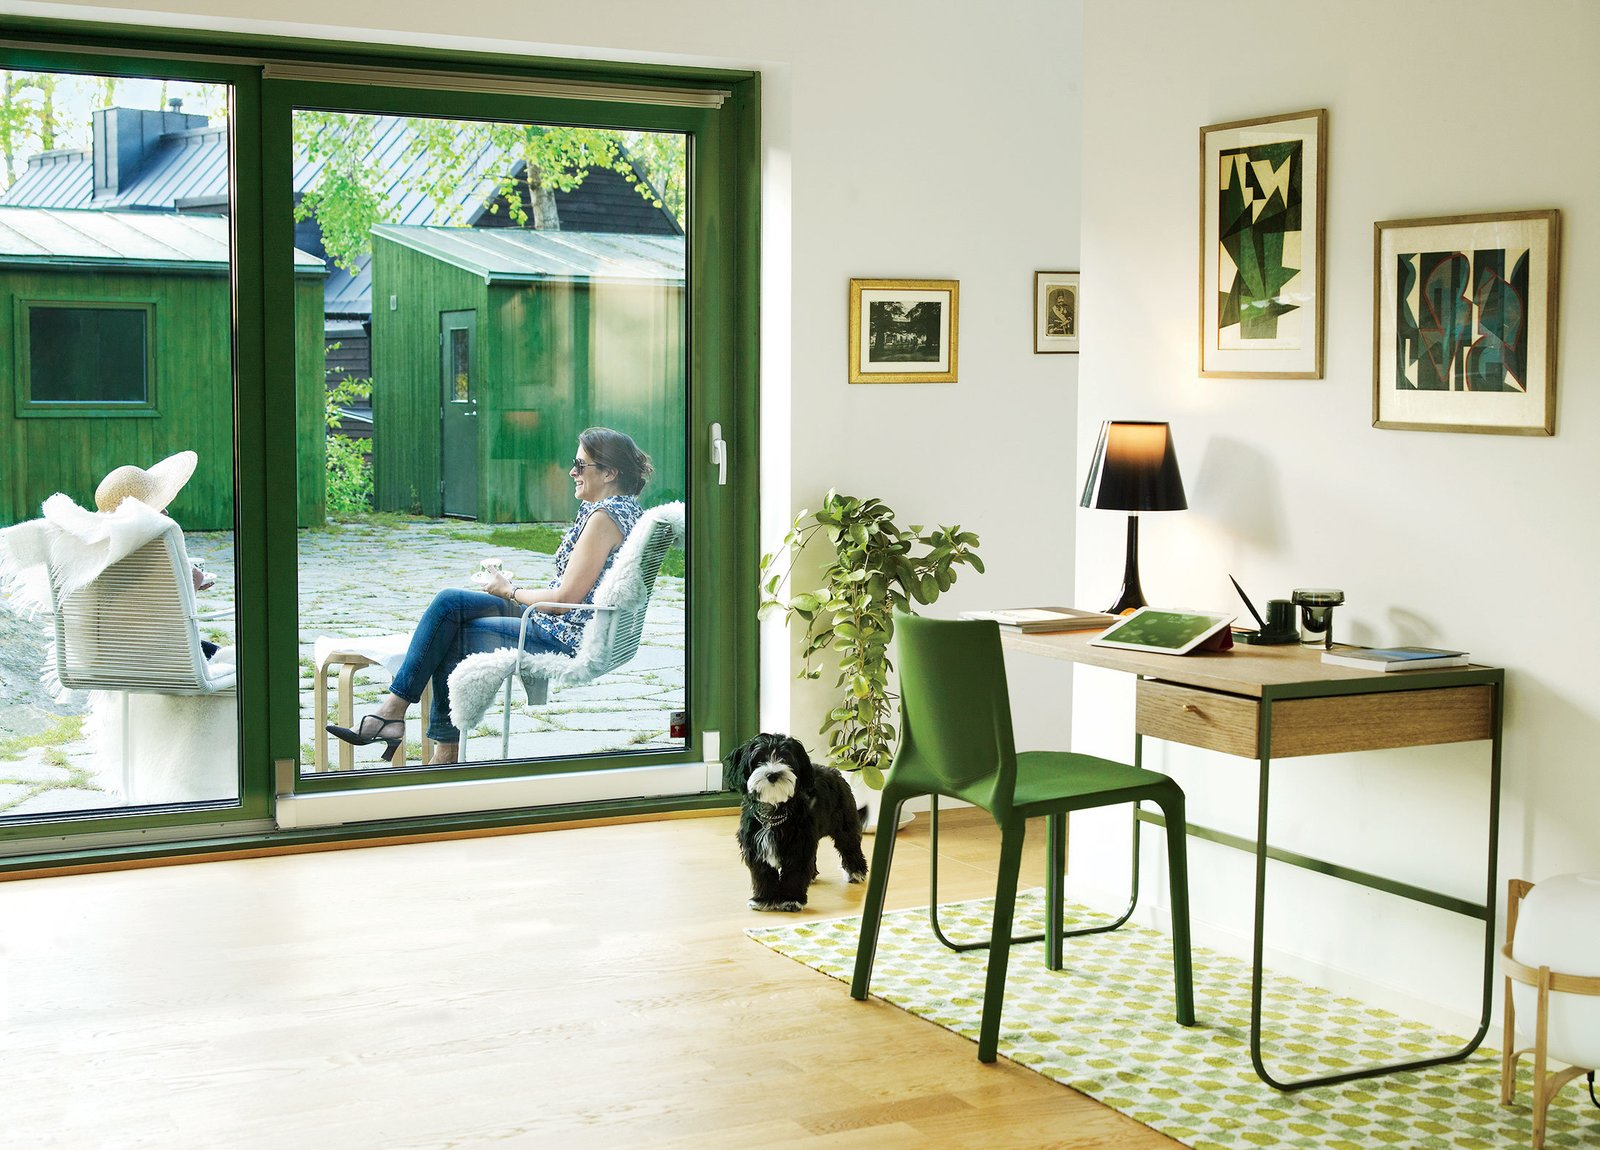 Franson Wreland also designed the court-yard and a pair of 160-square-foot outbuildings—one is used as guest quarters and the other as storage space. While residents Julia and Fatima Olivero-Reinius chat outdoors, Chippie the dog approaches an Asplund desk and a chair by LucidiPevere.